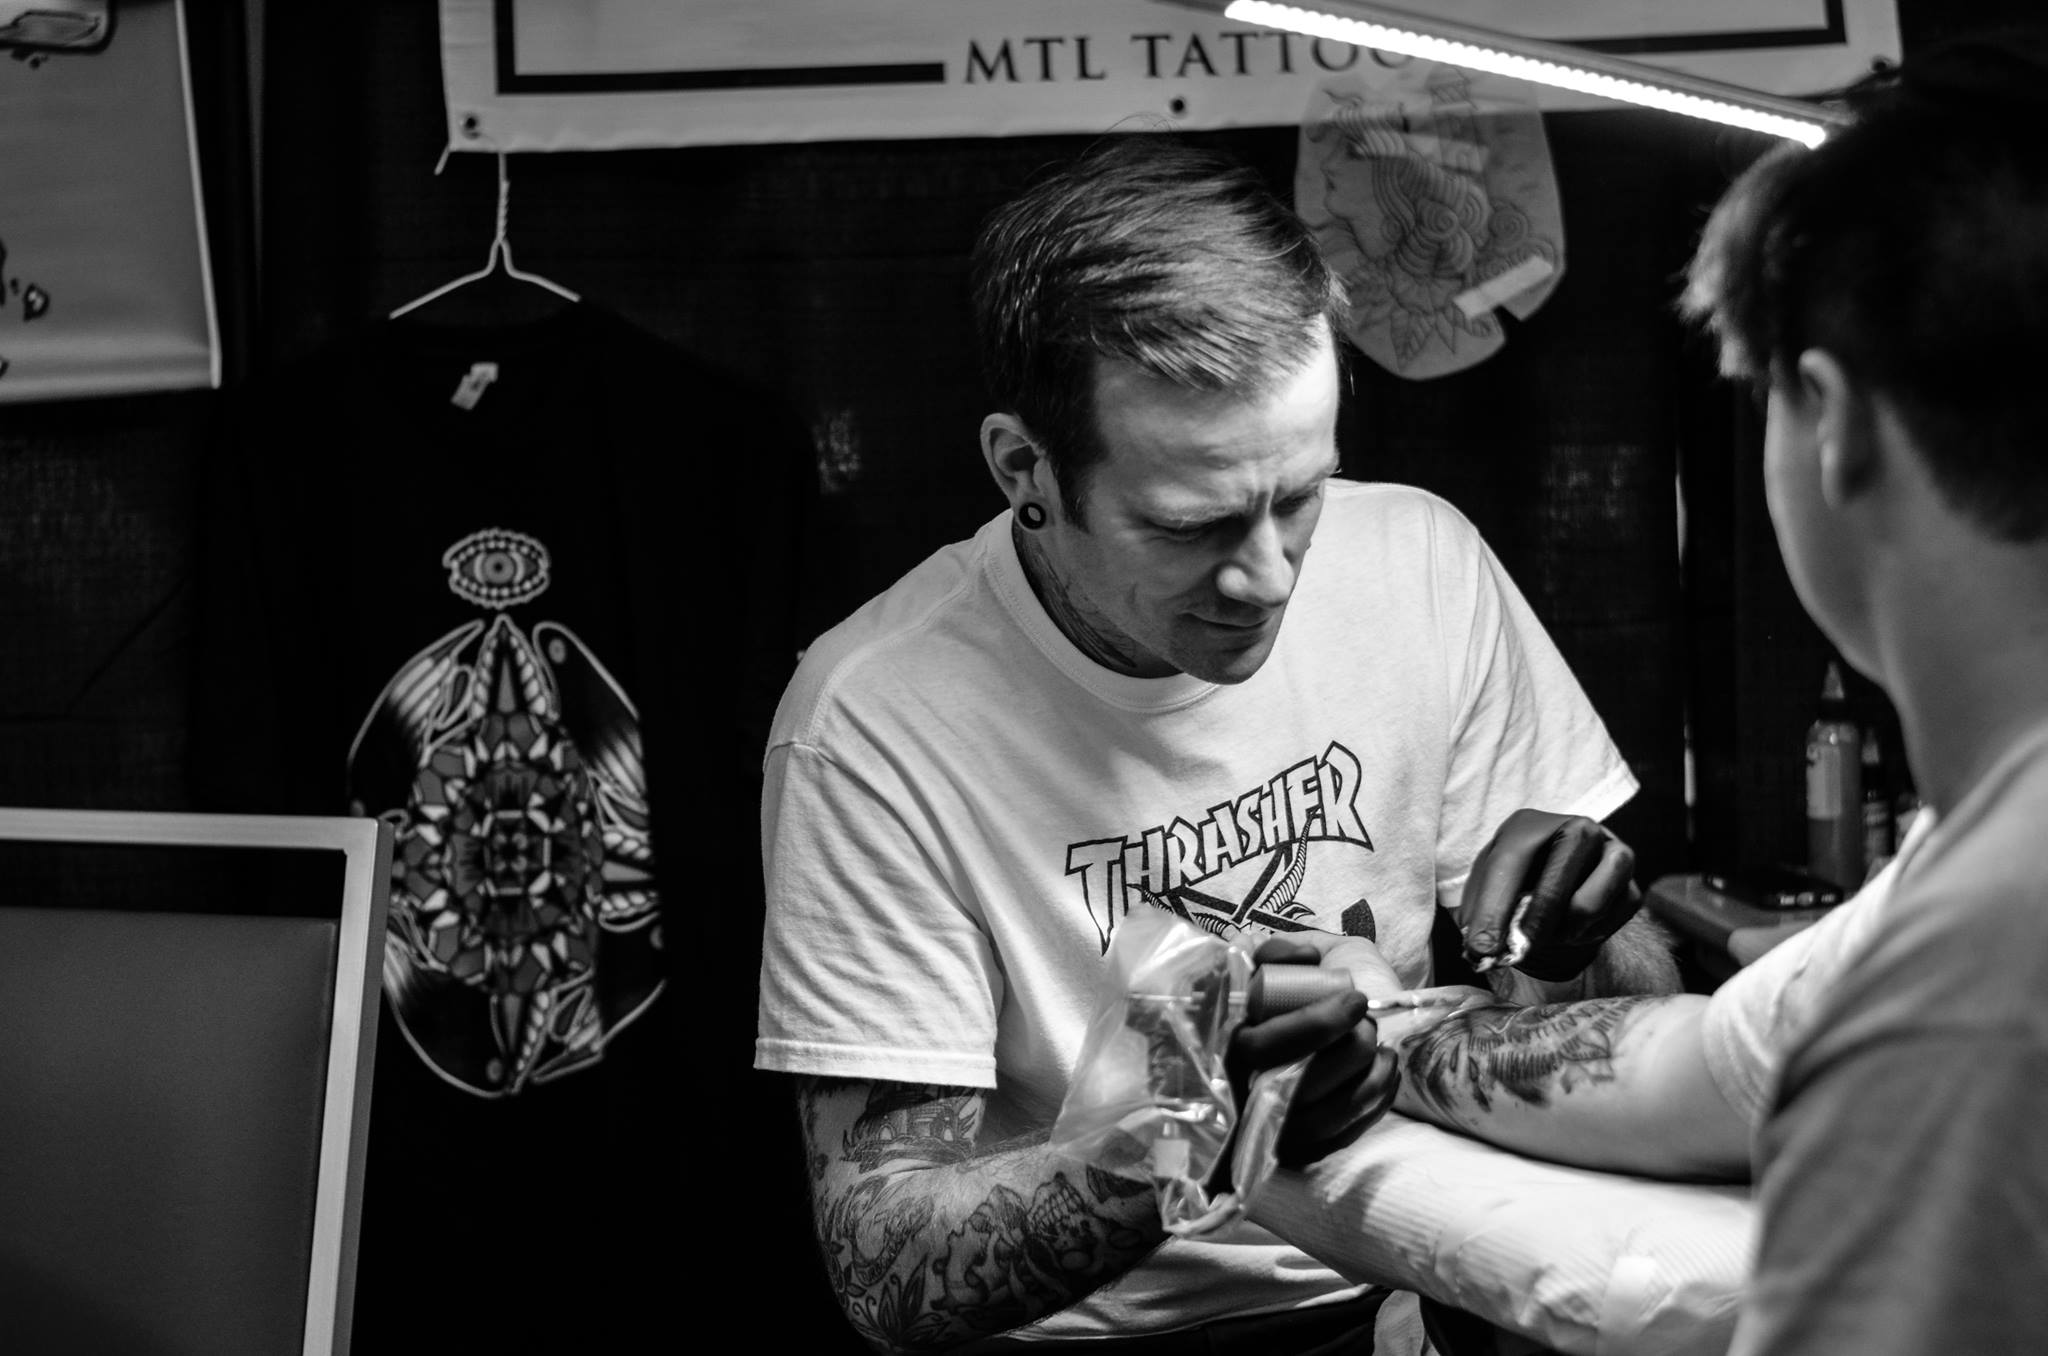 Celebrating the Art - and Fun - of the Tattoo World